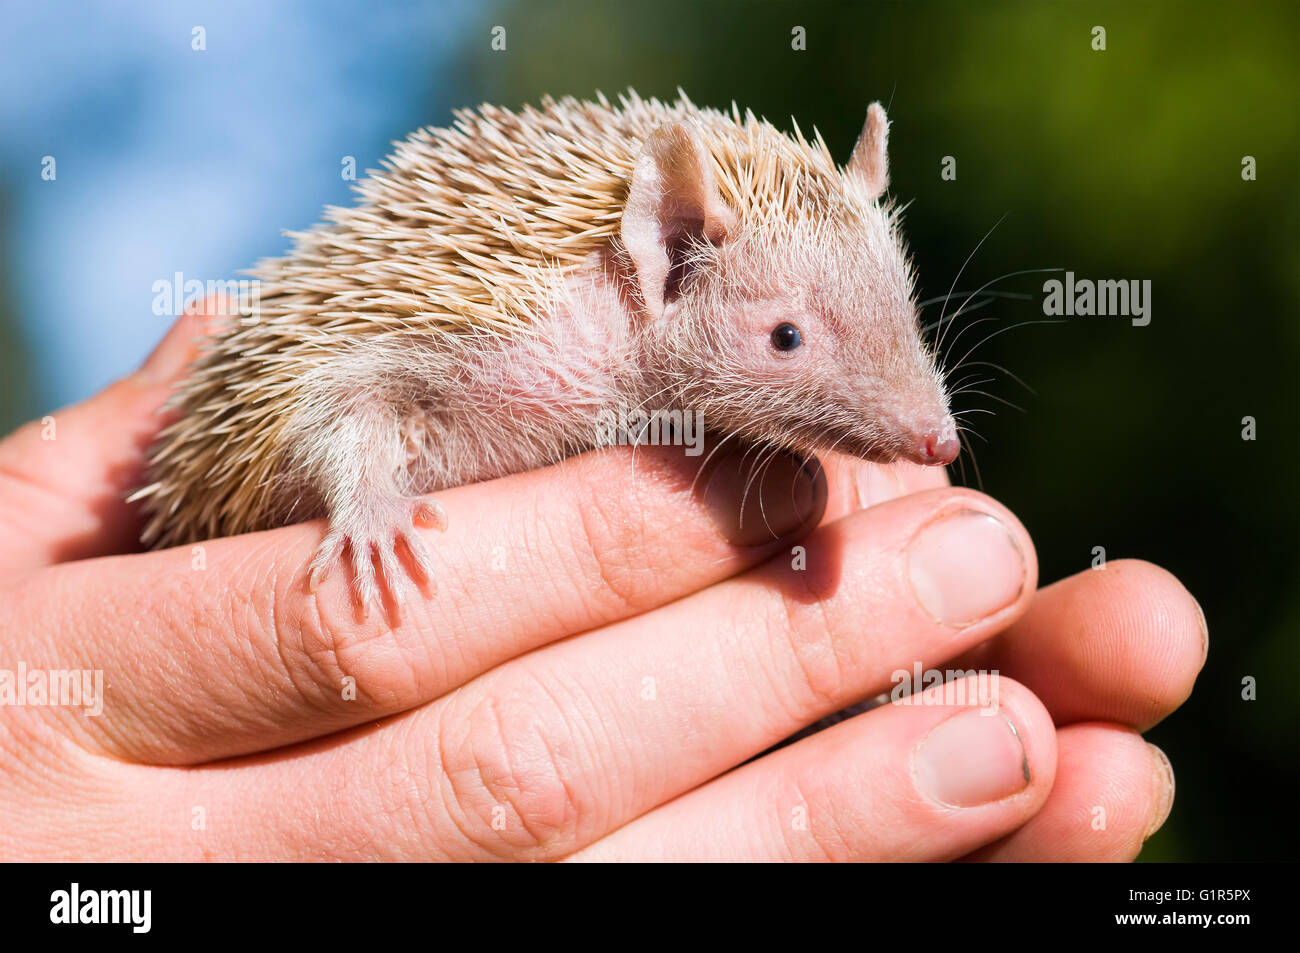 Tenrec Lesser Hedghog being held gently by Zoo Keeper Stock Photo